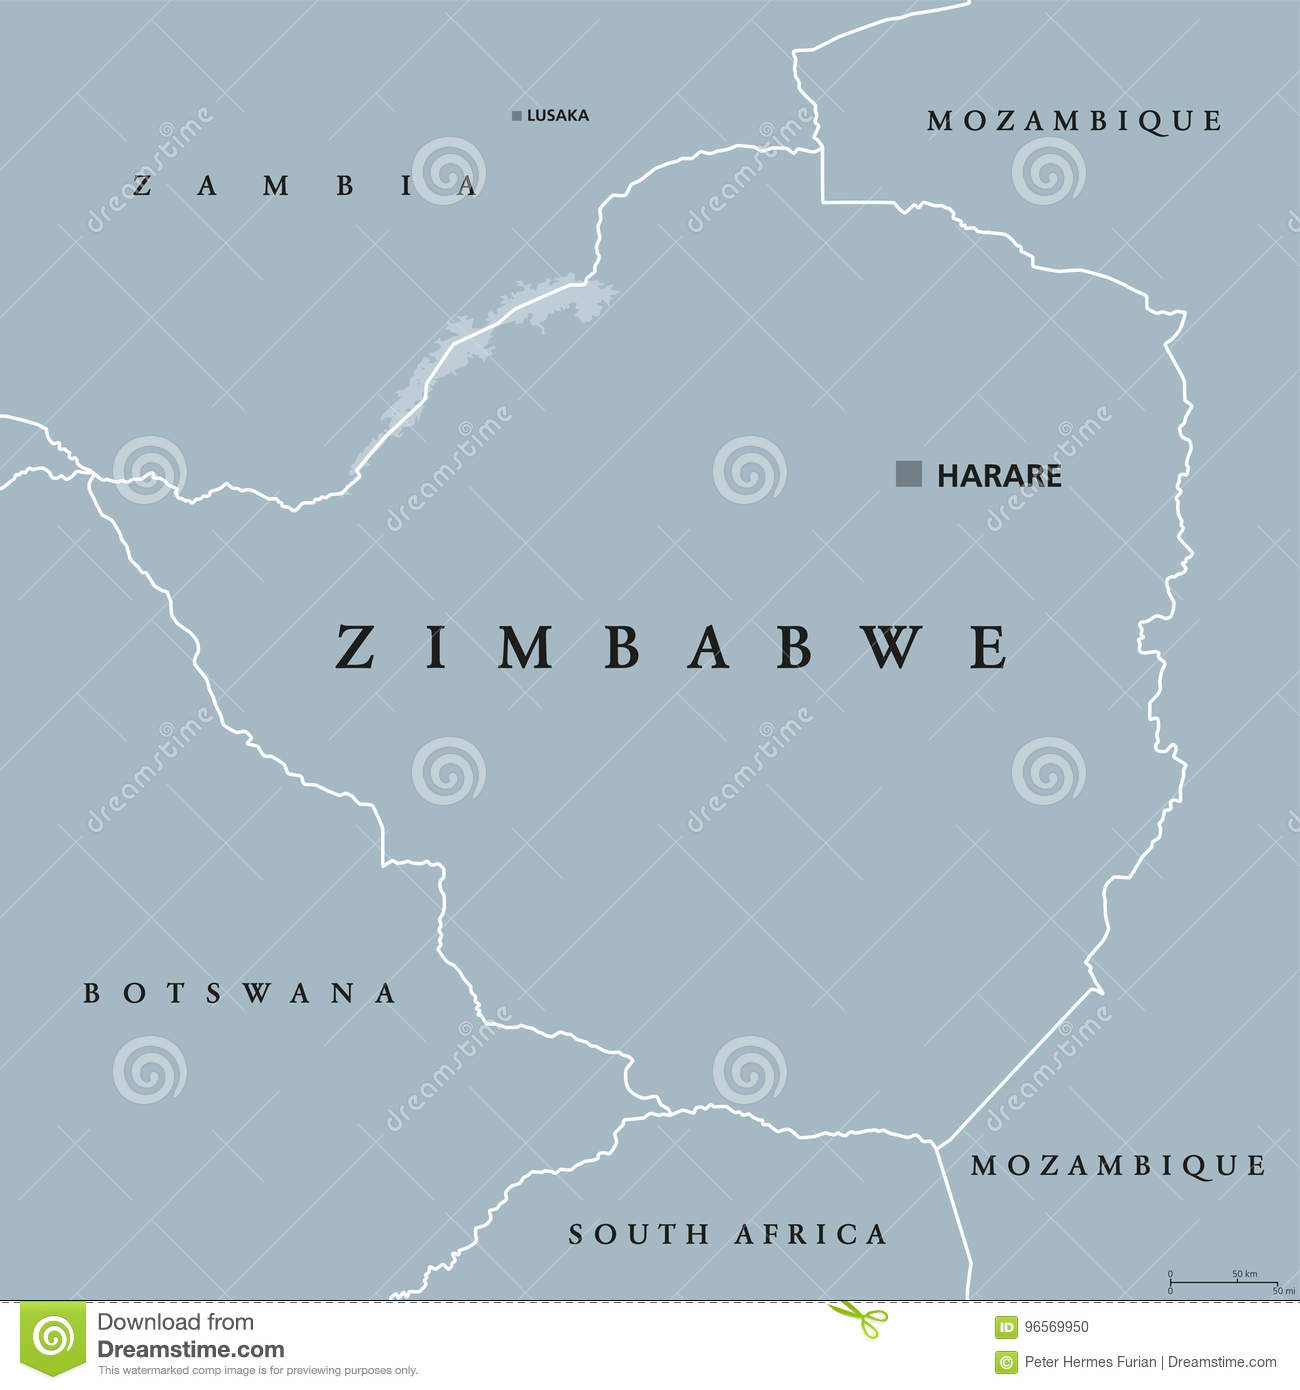 Map Of South Africa And Zimbabwe.Zimbabwe Political Map Stock Vector Illustration Of Destination